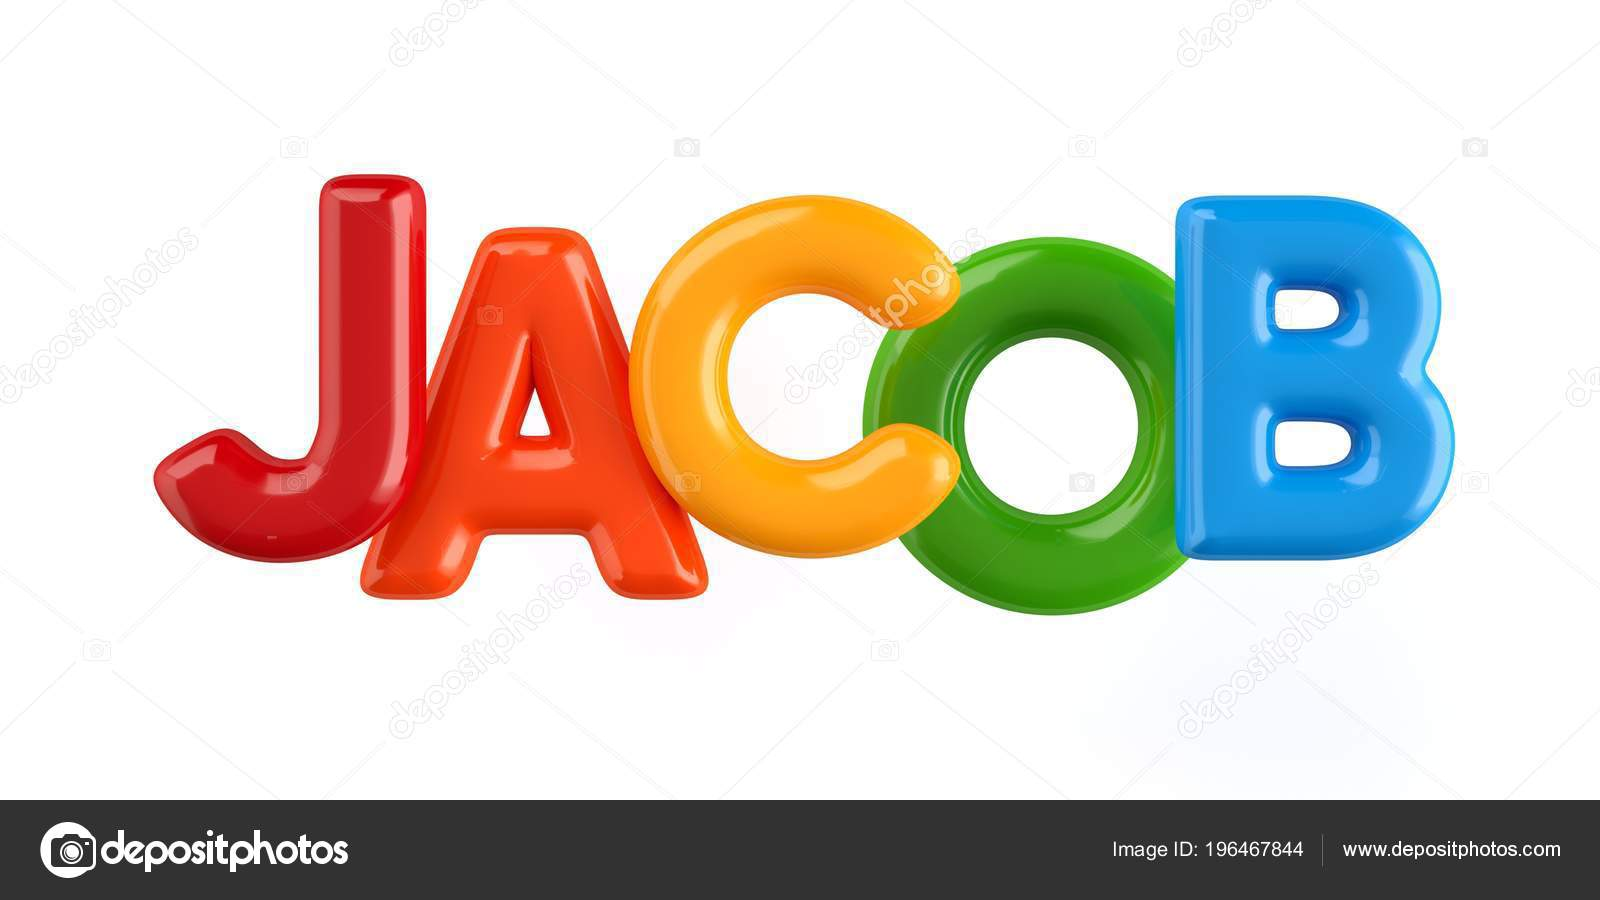 depositphotos 196467844 stock photo isolated colorfull 3d kid name